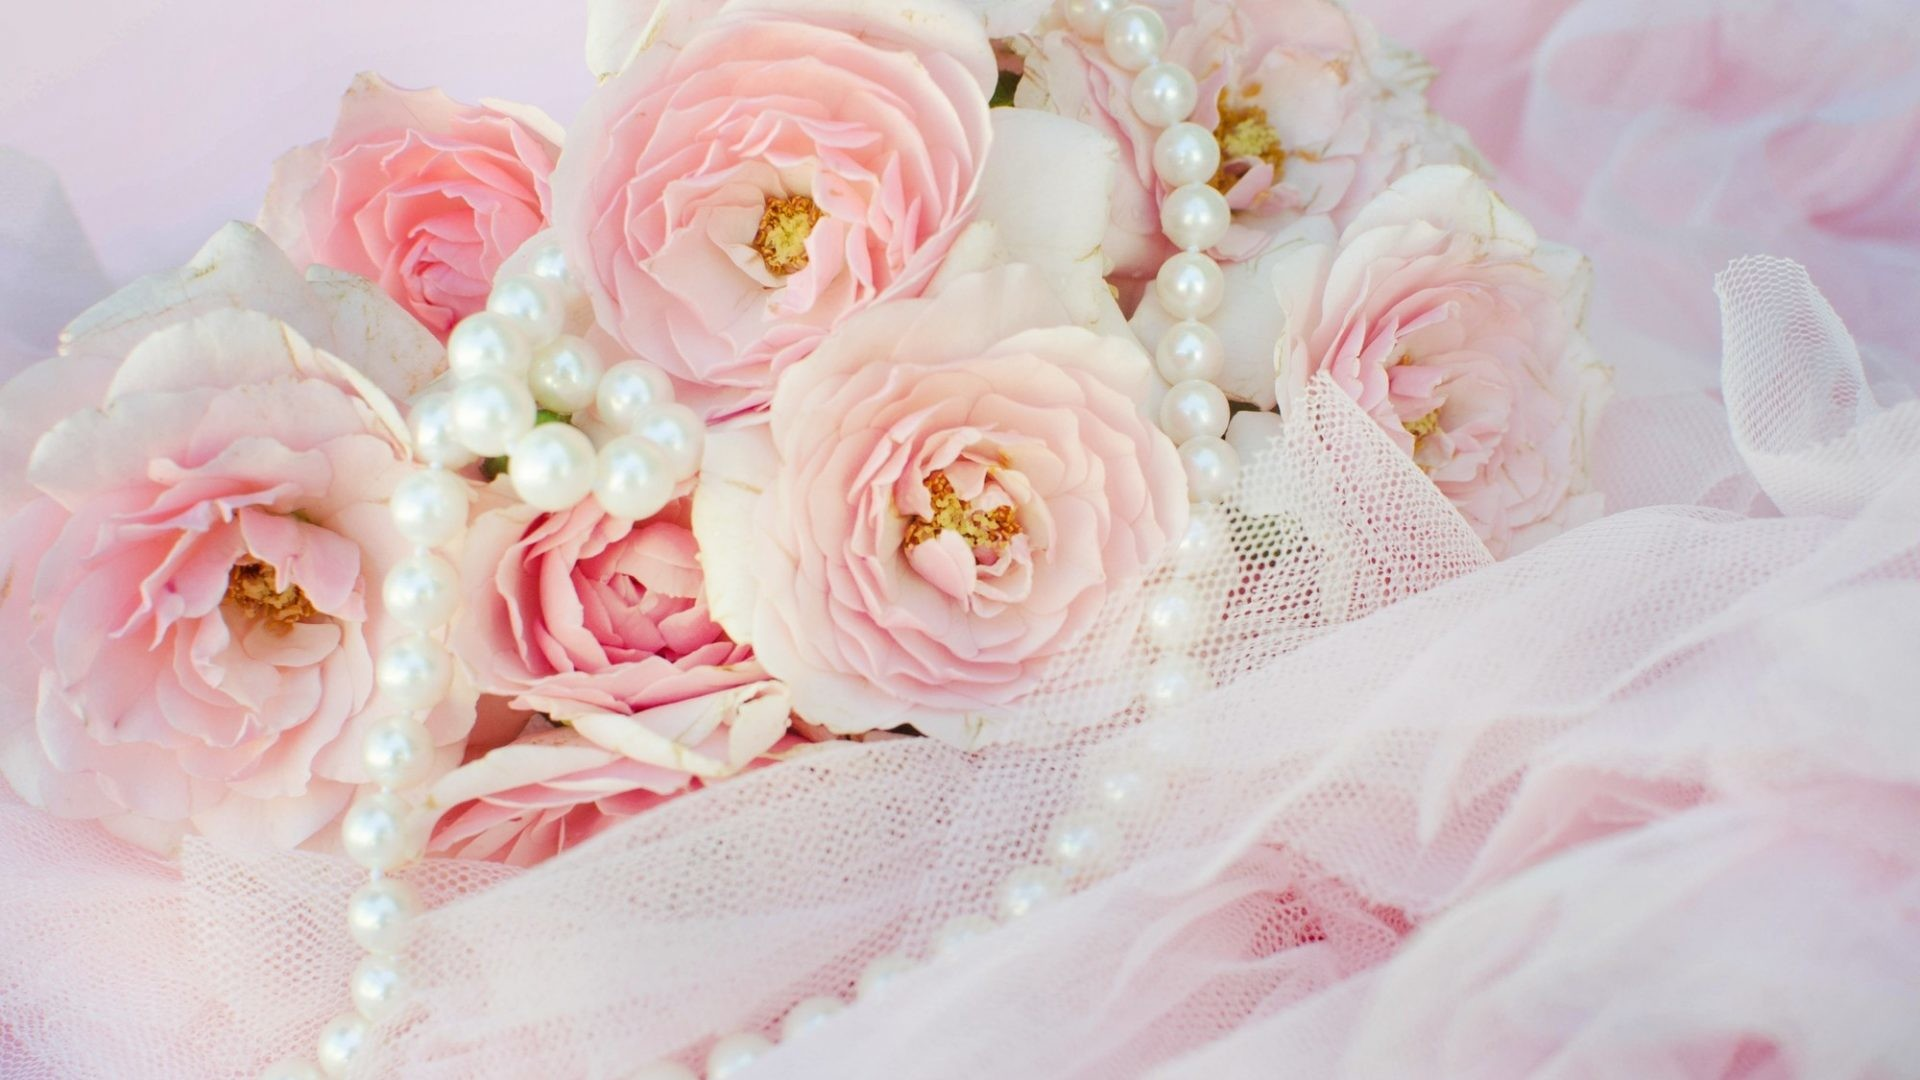 1920x1080 Pearls Tag - Roses Pearls Pink Flowers Lace Flower Wallpaper And Backgrounds  for HD 16: